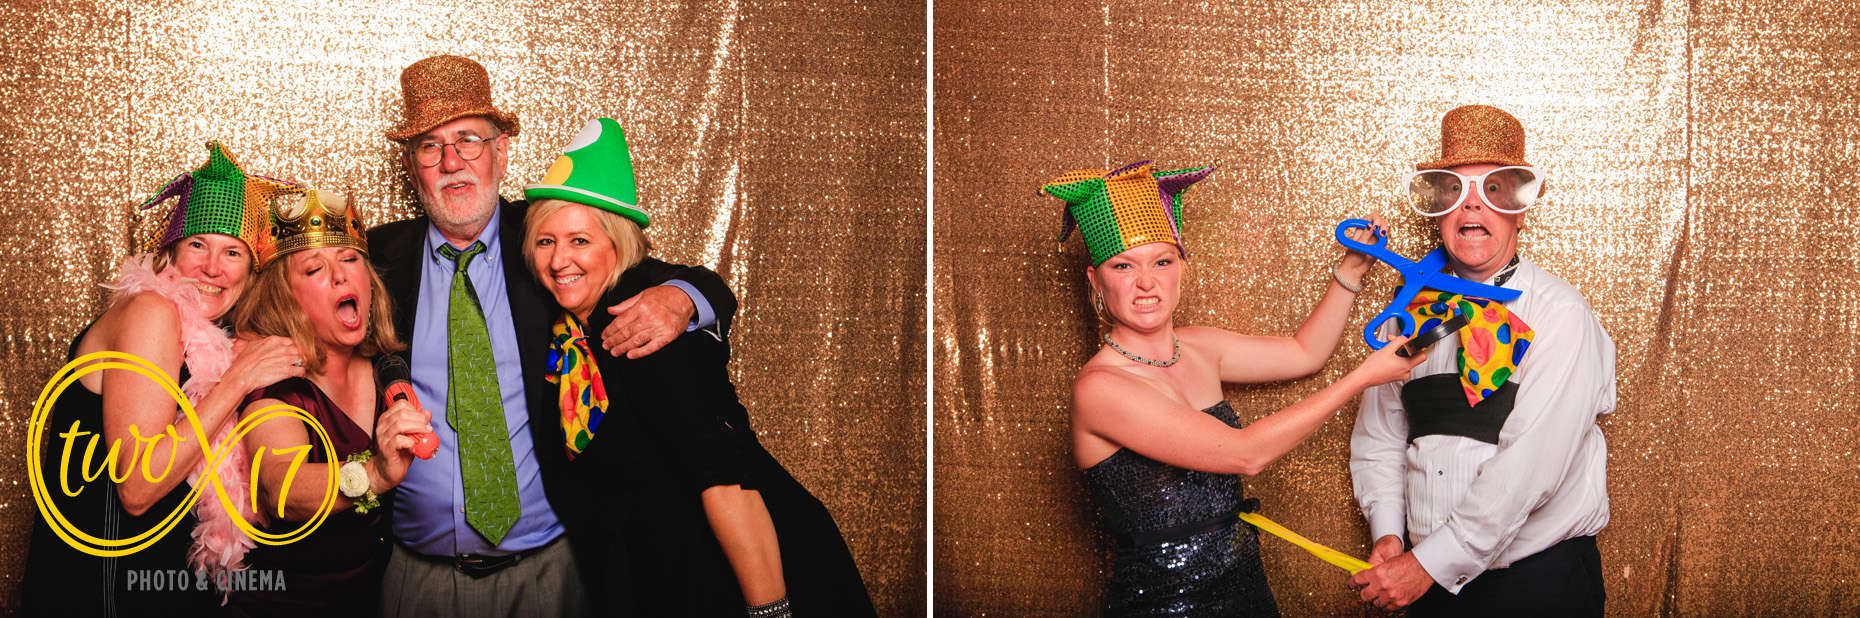 Cape May Wedding Photo Booth